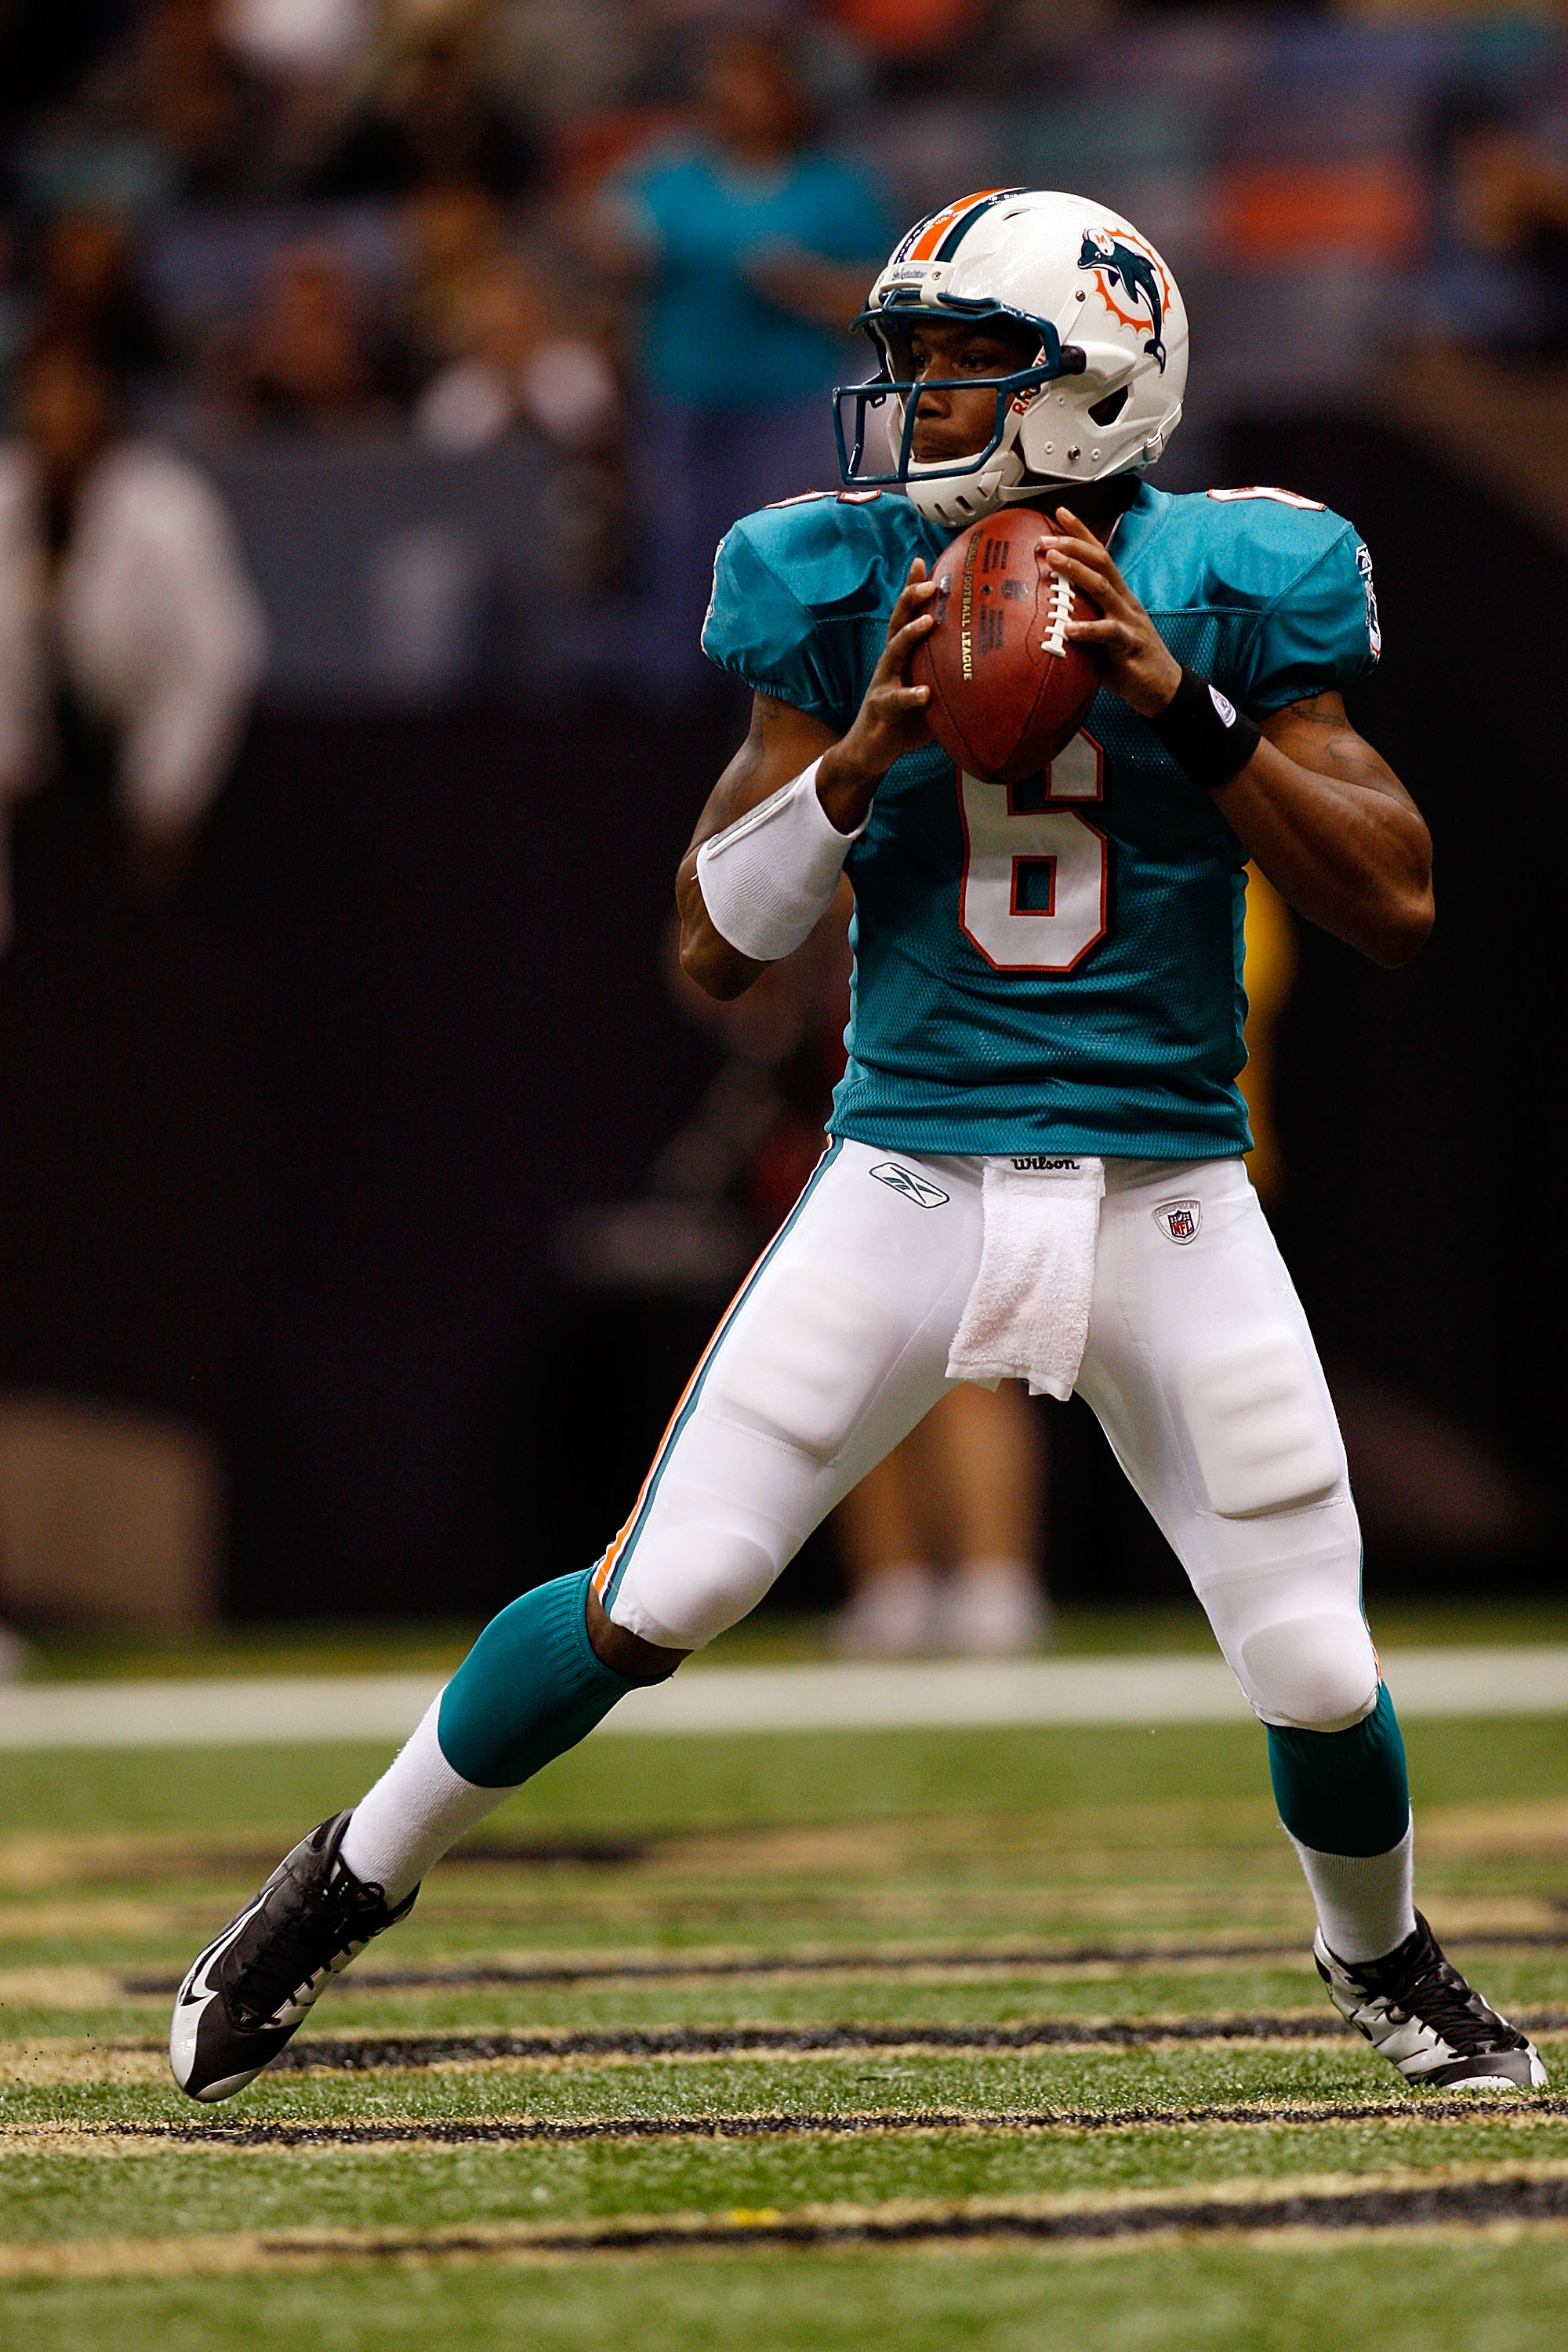 NEW ORLEANS - SEPTEMBER 03:  Quarterback Pat White #6 of the Miami Dolphins looks to throw a pass against the New Orleans Saints at the Louisiana Superdome on September 3, 2009 in New Orleans, Louisiana. The Dolphins defeated the Saints 10-7.  (Photo by C